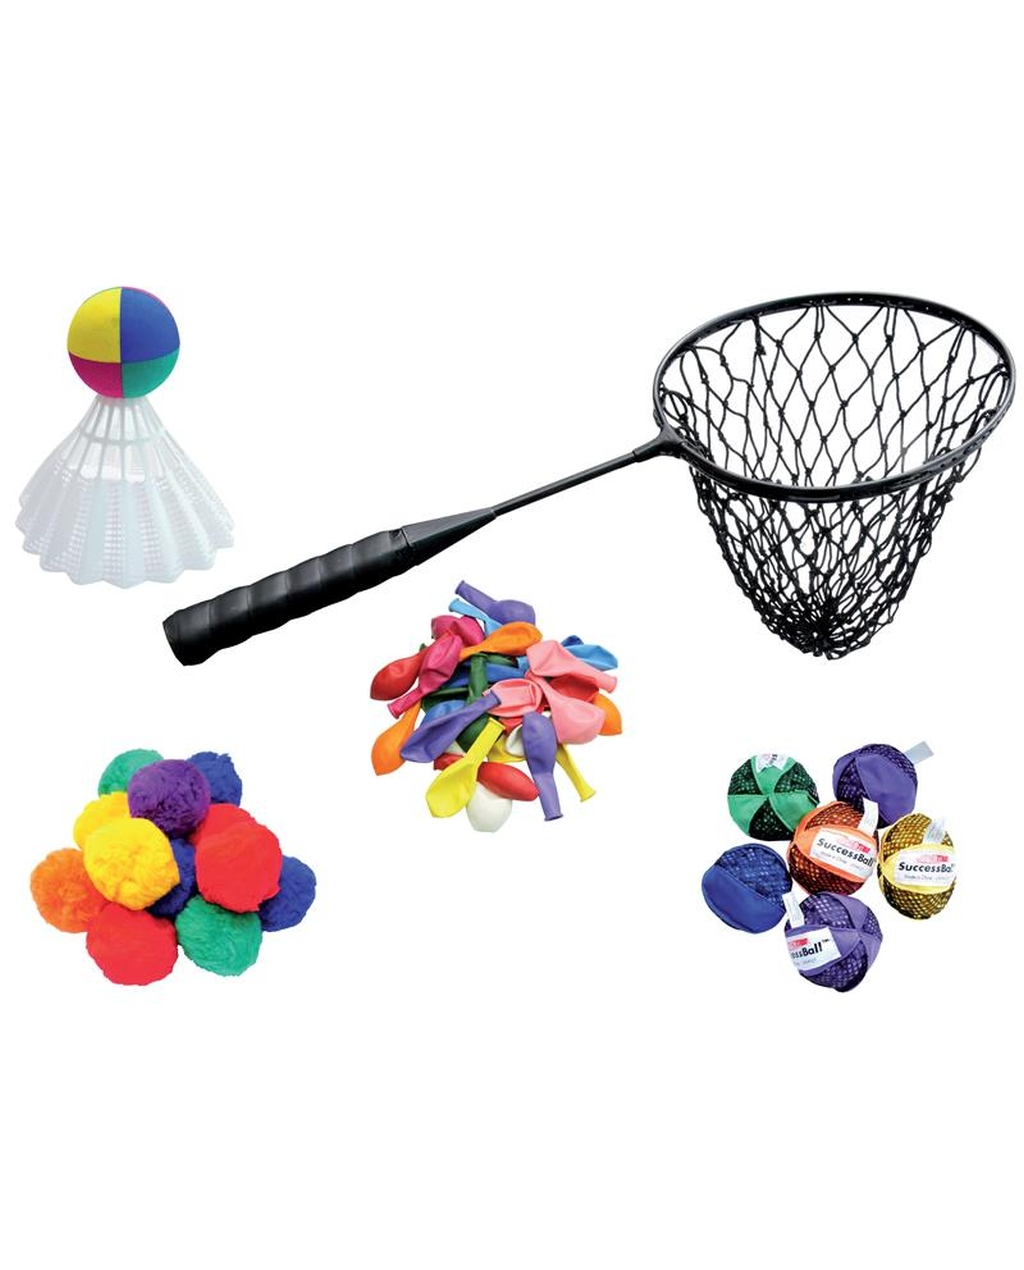 Racket Pack Accessories